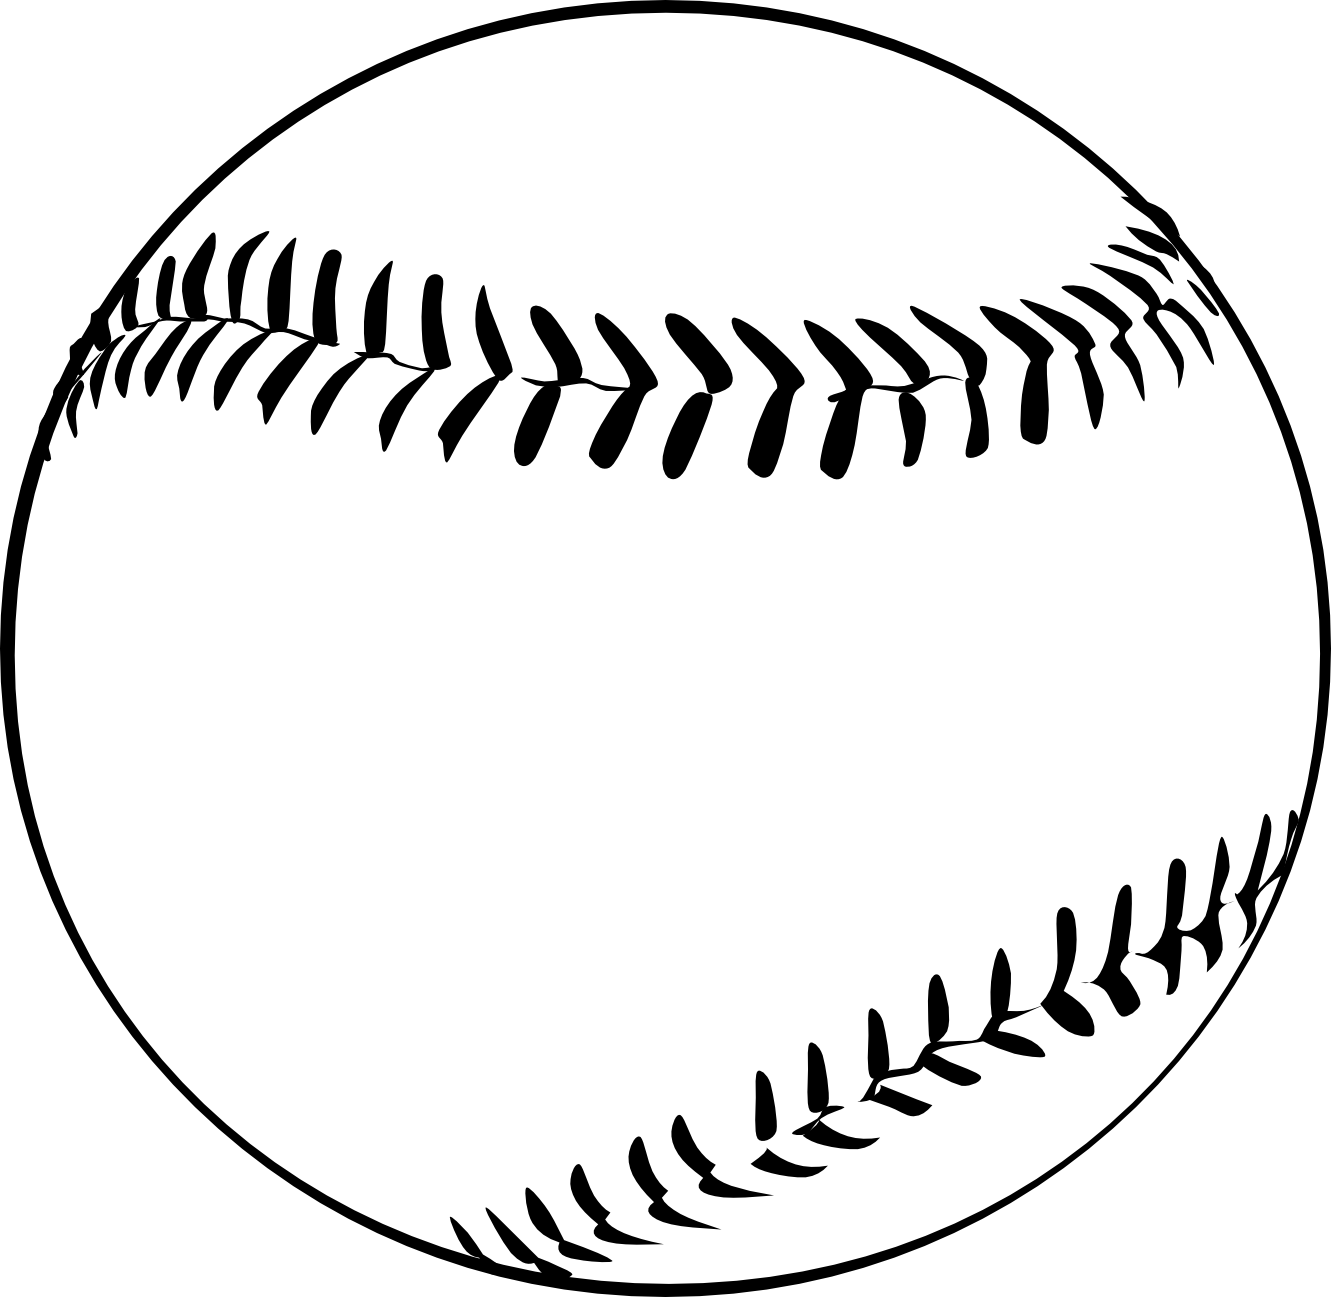 Baseball ball clipart black and white free image freeuse stock Baseball clipart black and white free images 5 - WikiClipArt image freeuse stock